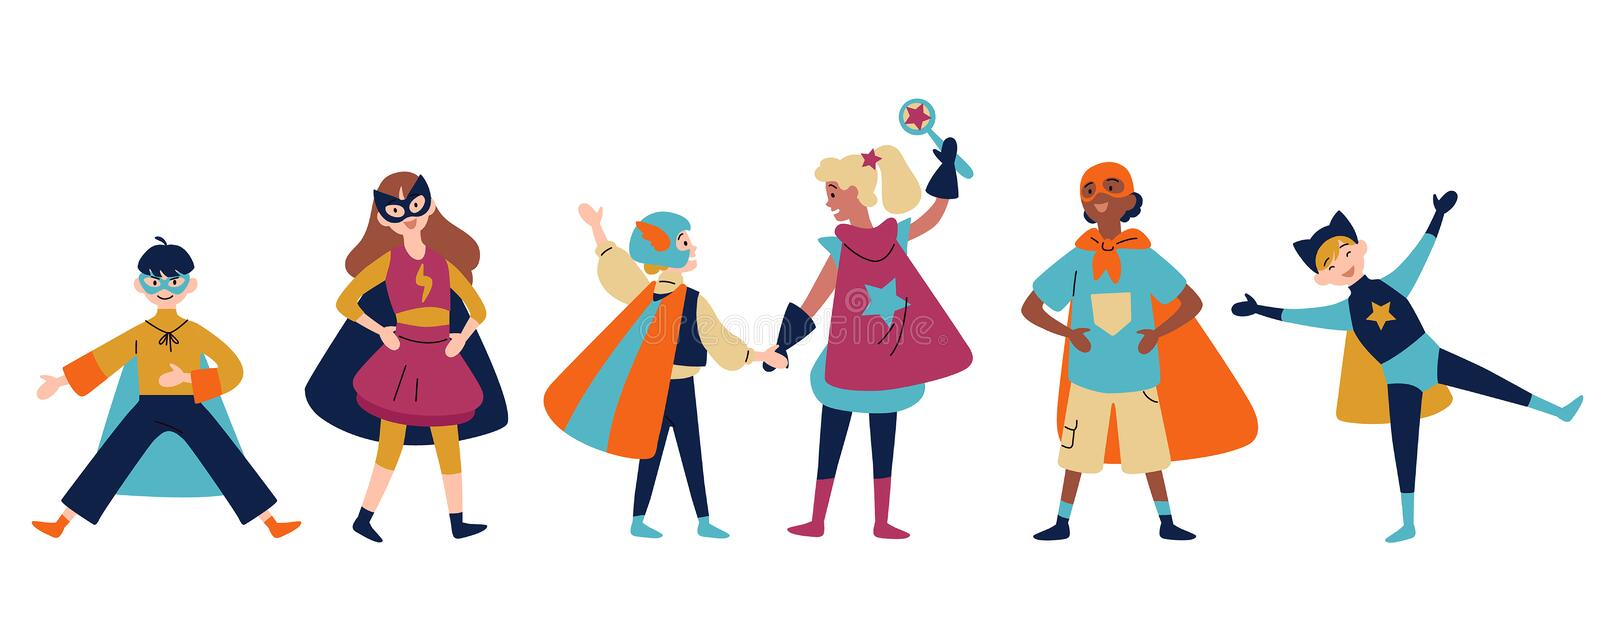 Kids wearing colorful costumes of different superheroes vector illustration